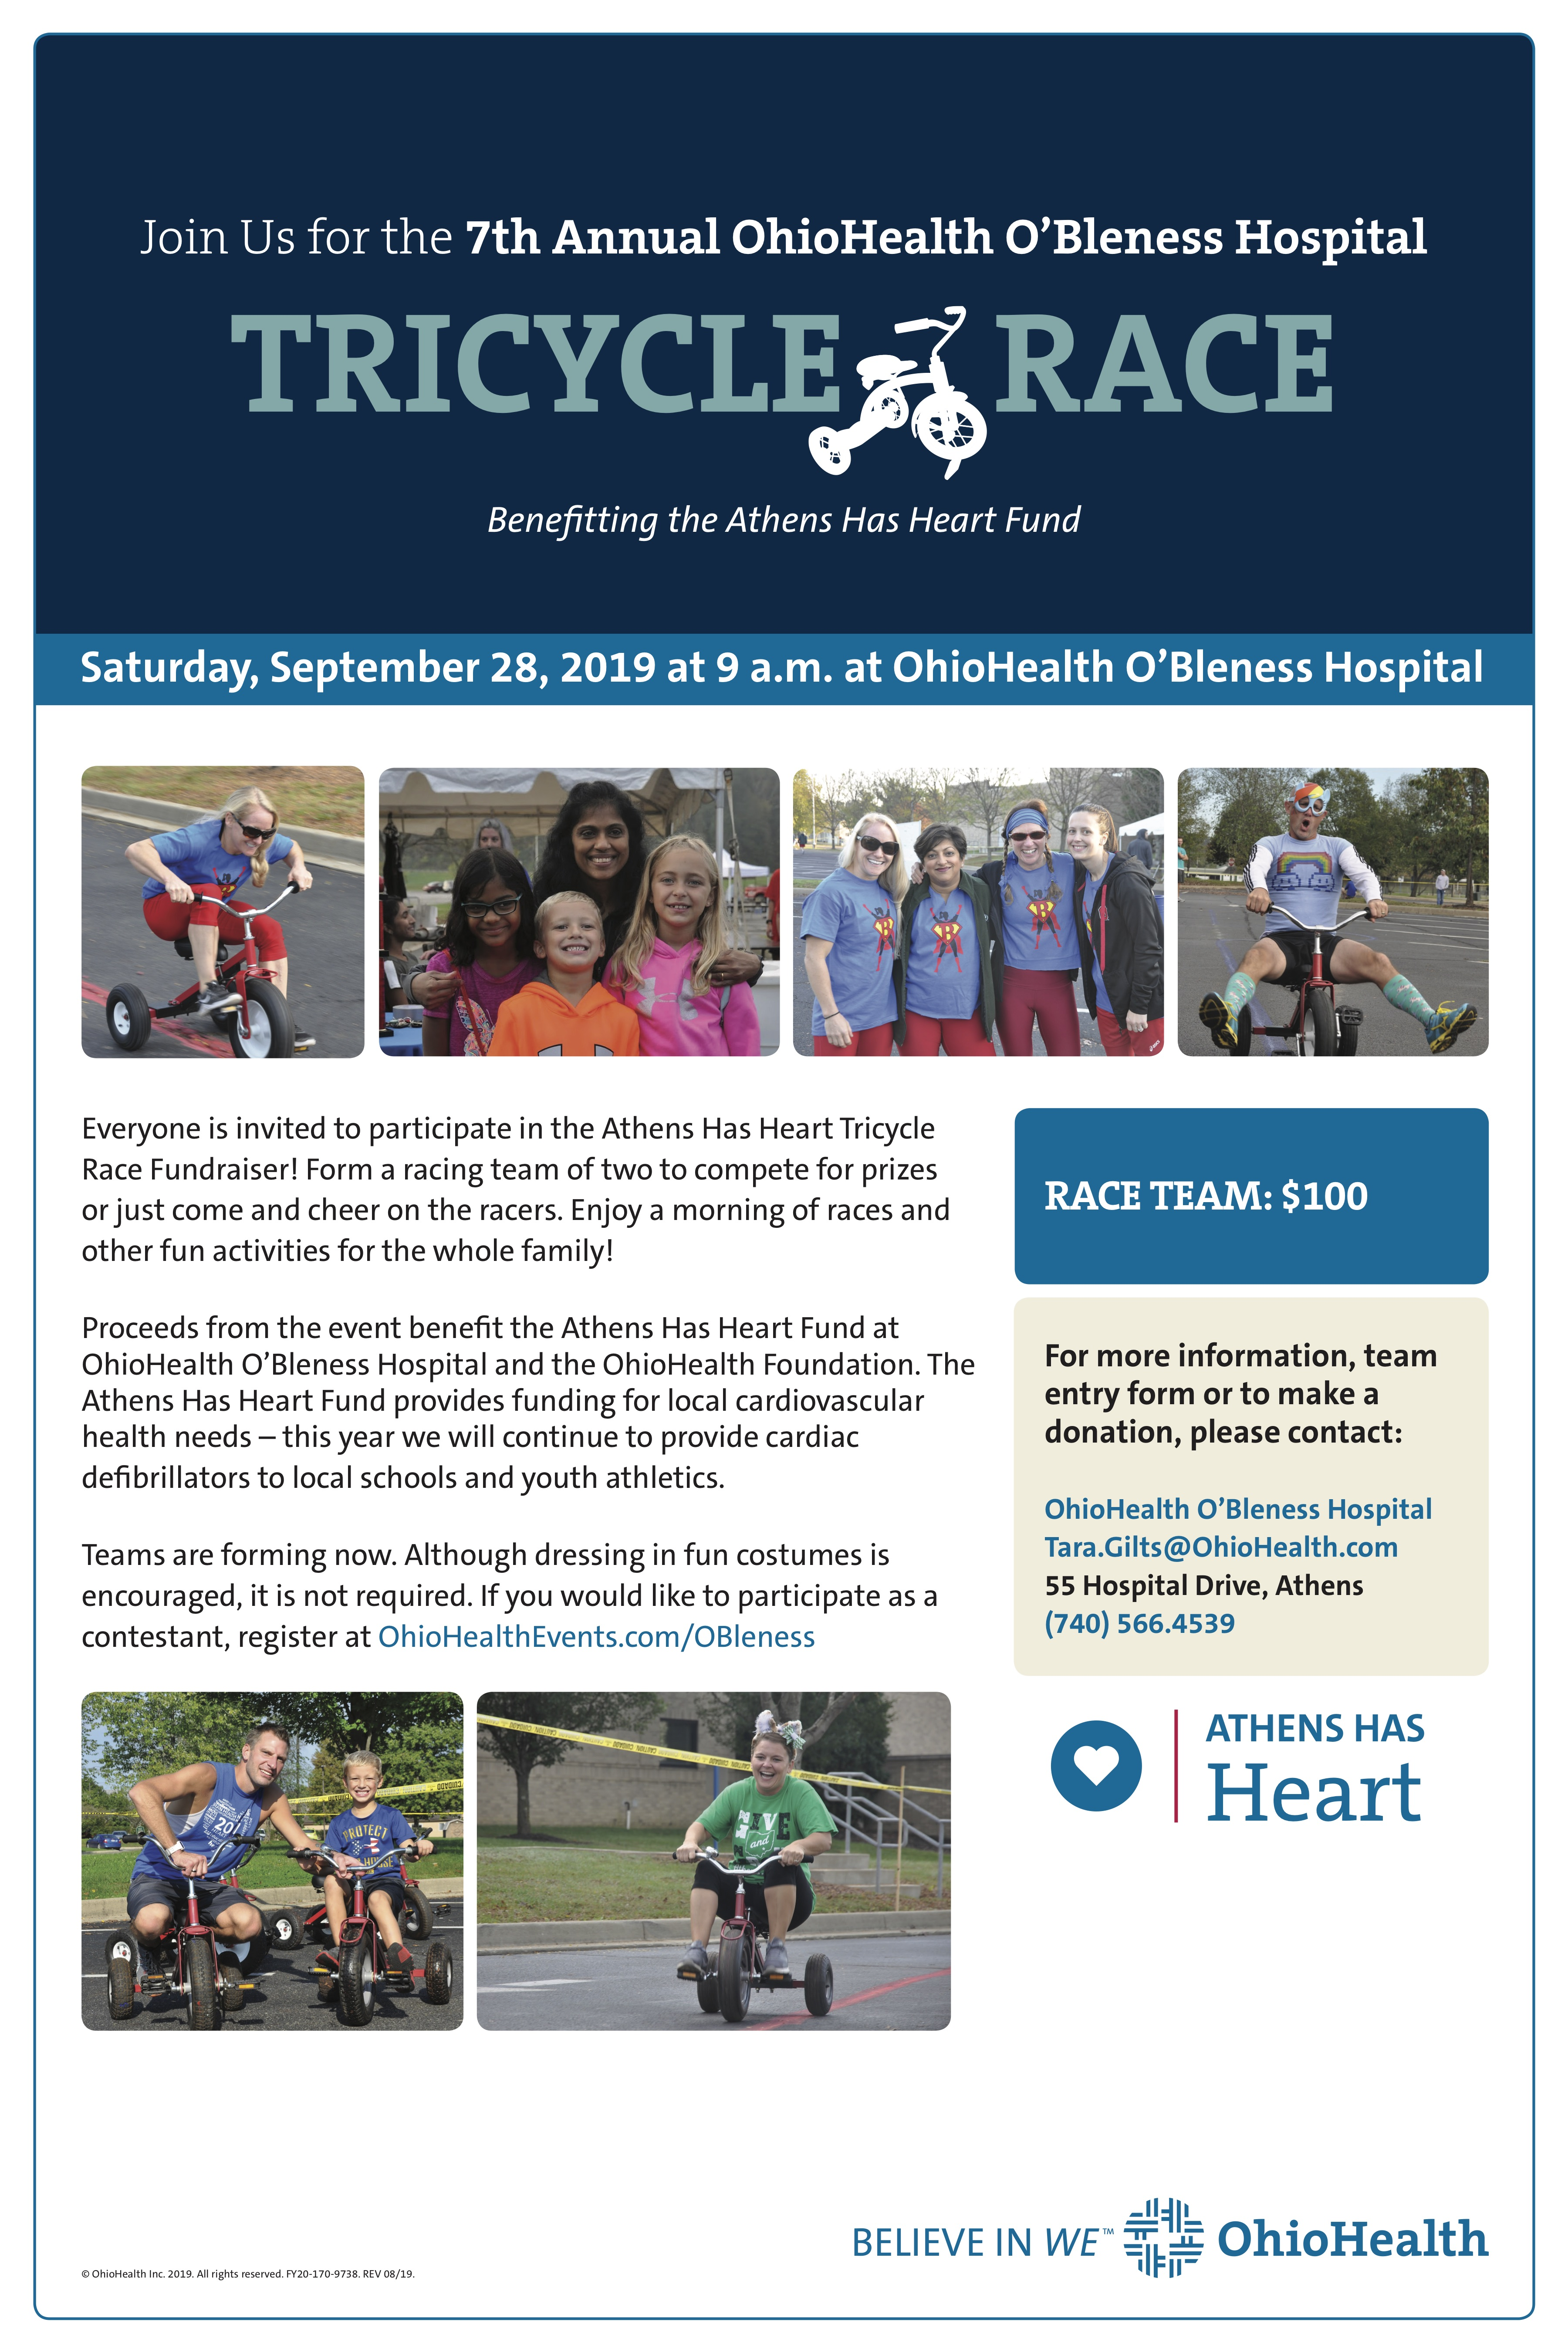 Athens Has Heart Tricycle Race Flyer 2019